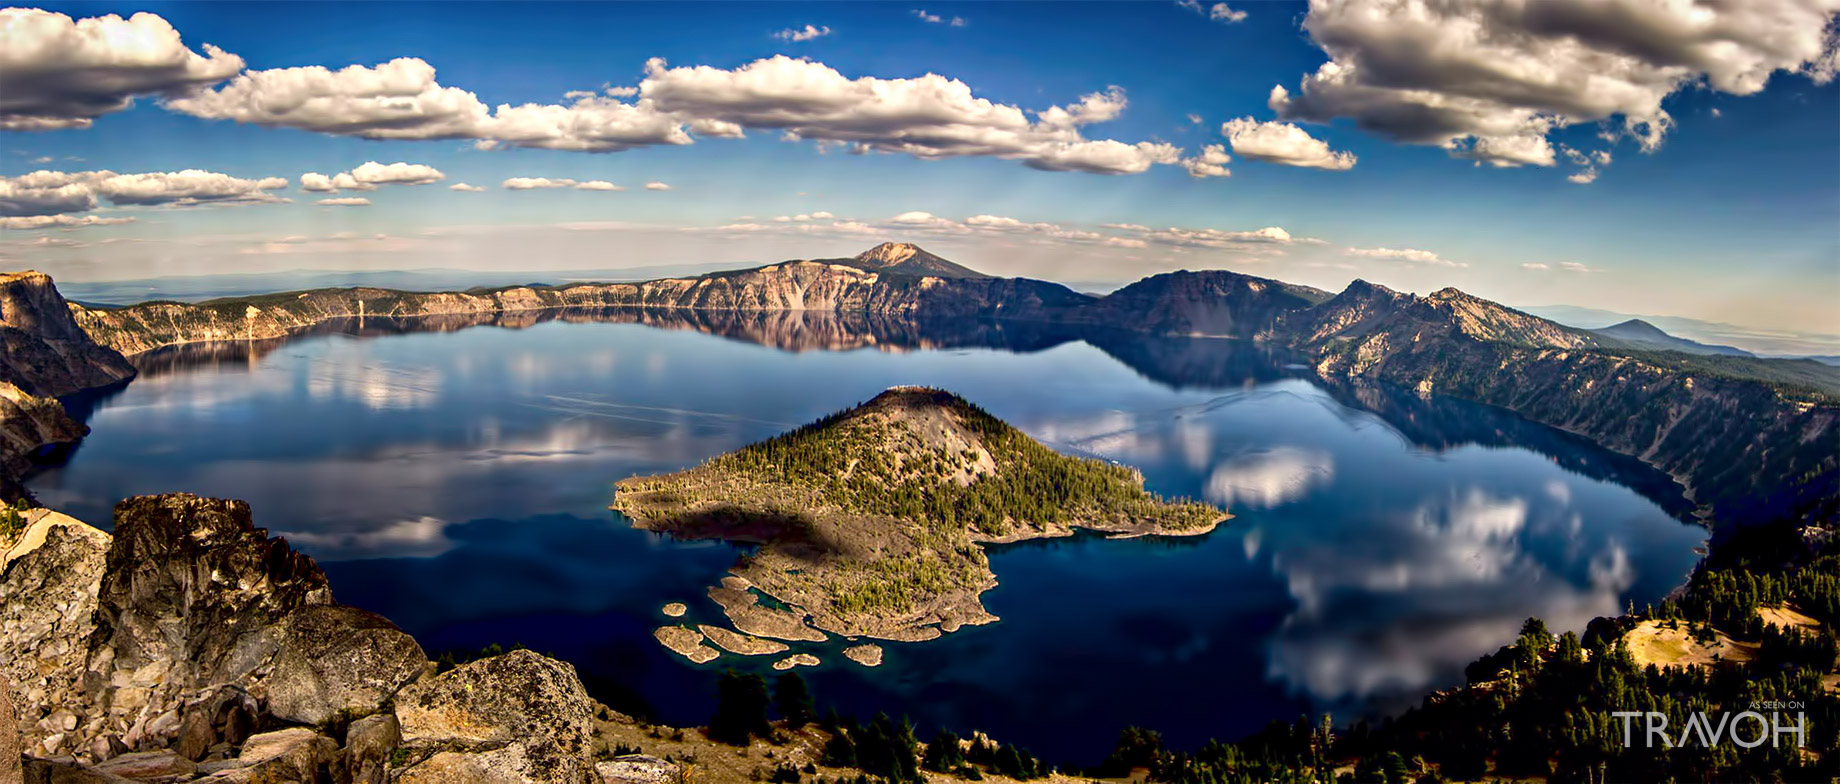 Aerial View Sunset from Crater Lake in Oregon, USA